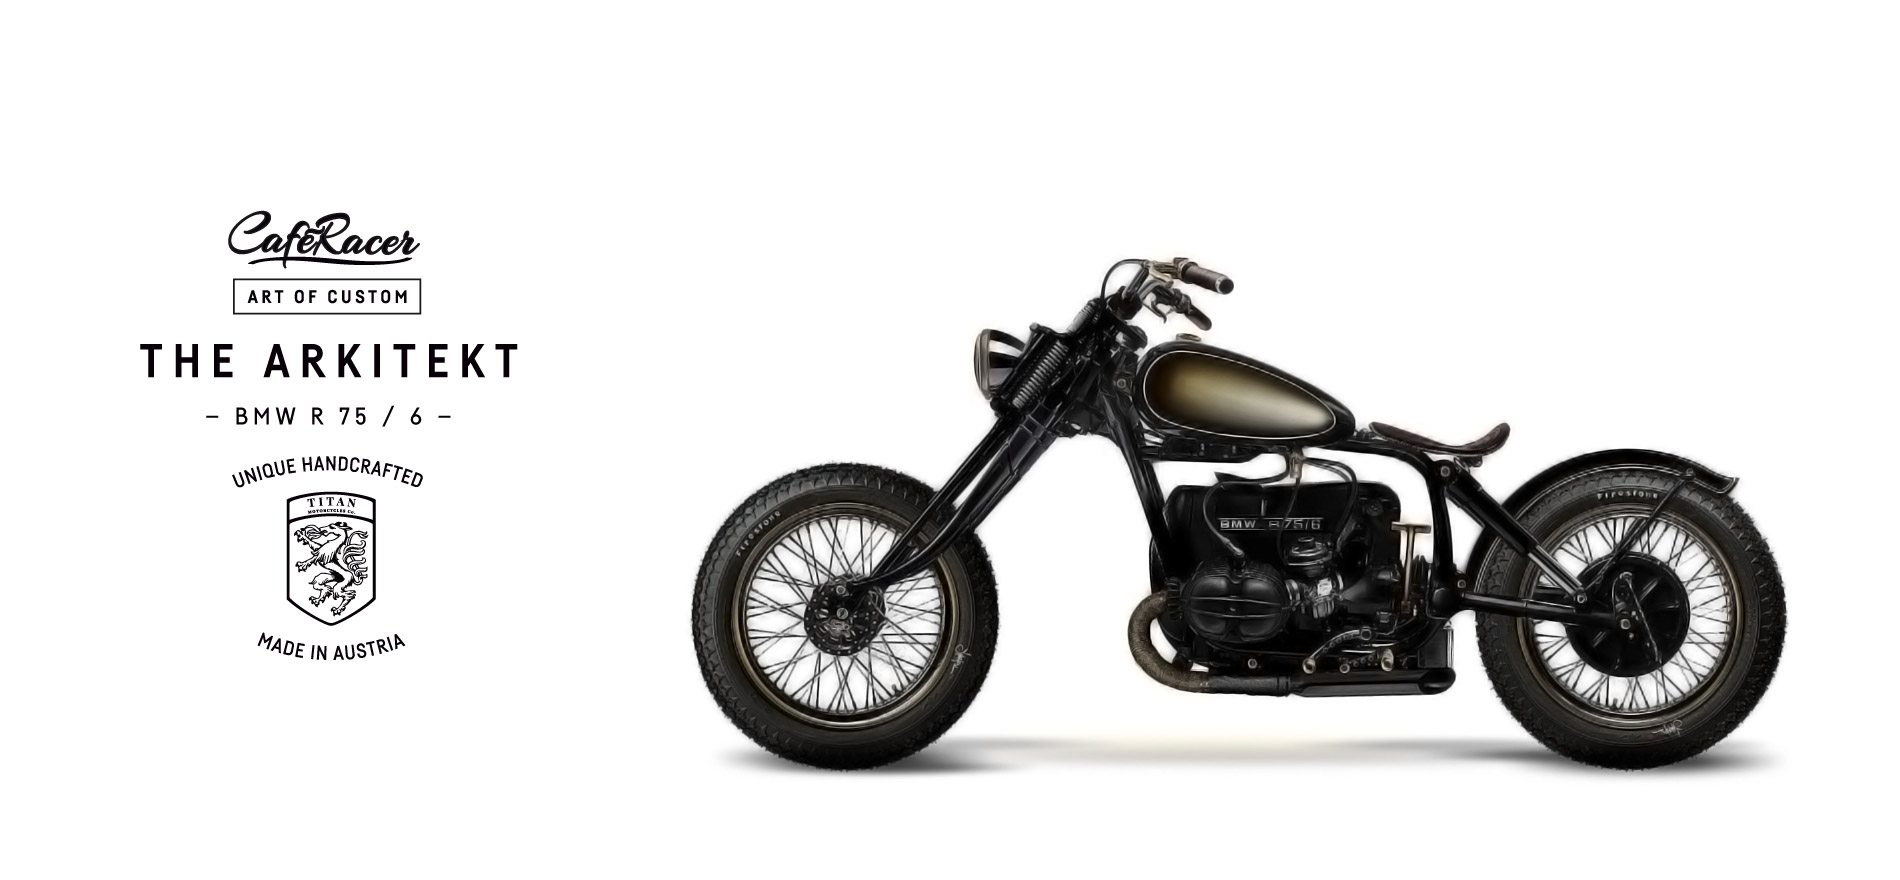 TITAN_CustomBike_CafeRacer_Graz_MadeInAustria_Before-After_Titan-Arkitekt_BMW_Umbau_01